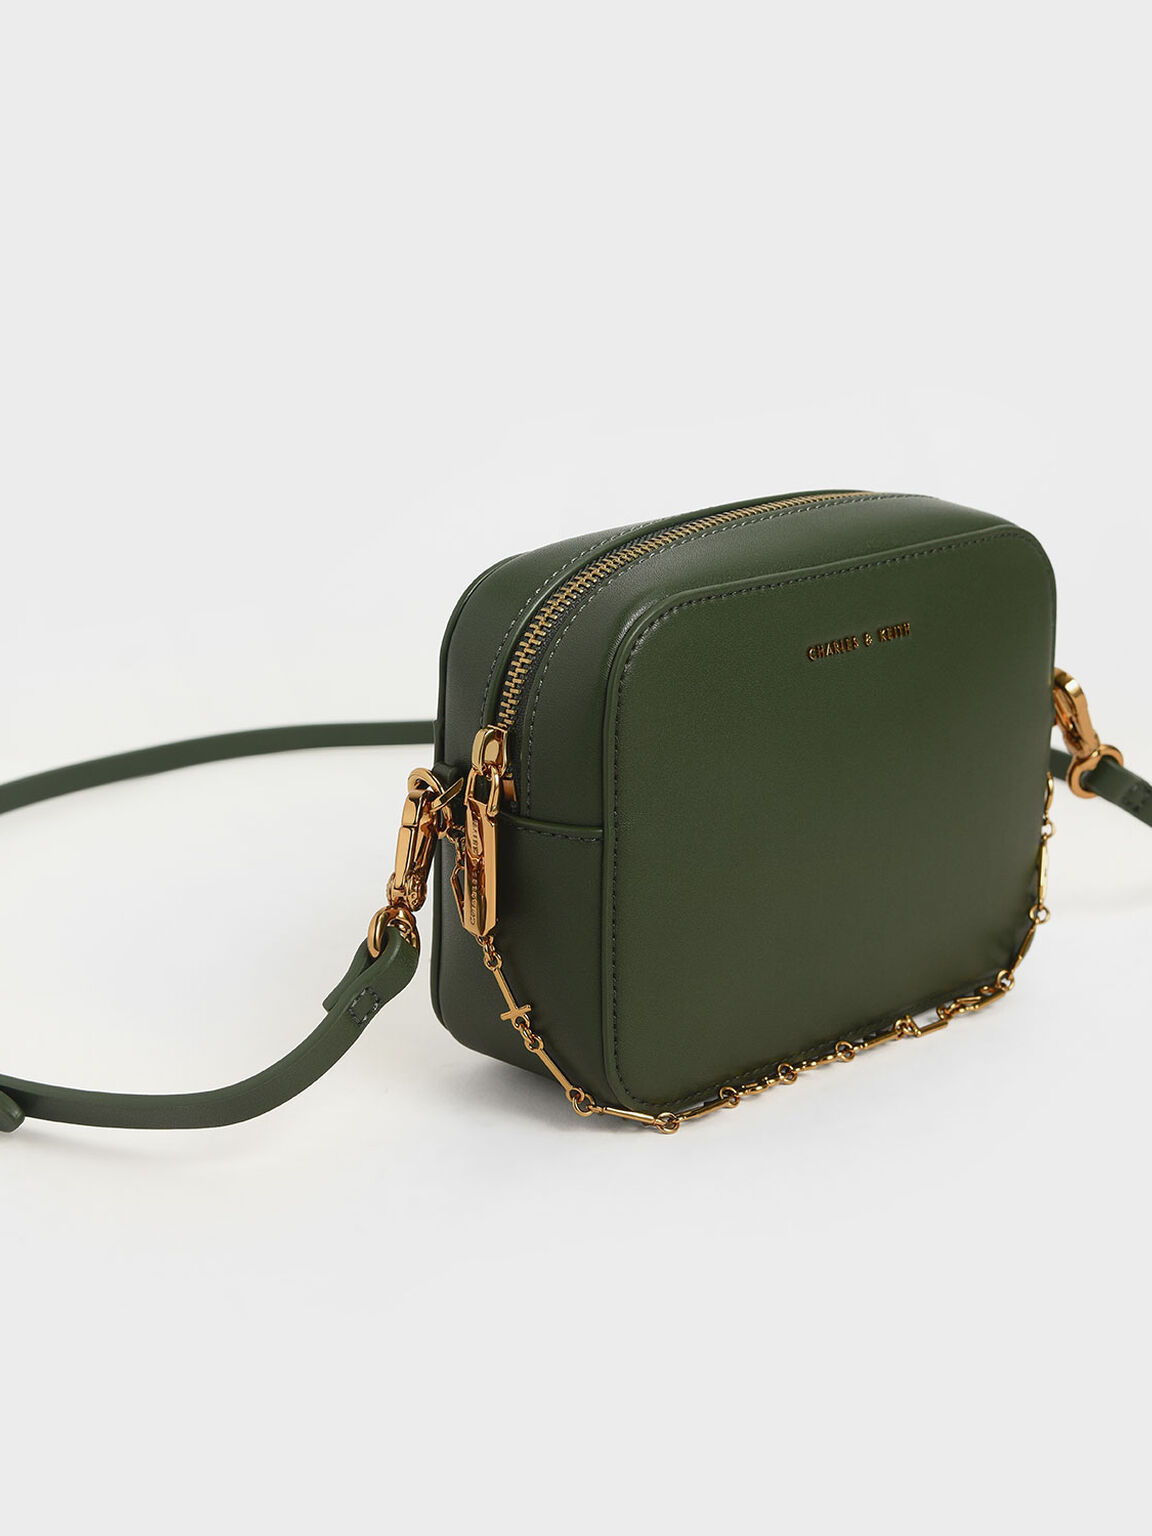 Chain-Link Rectangular Bag, Green, hi-res